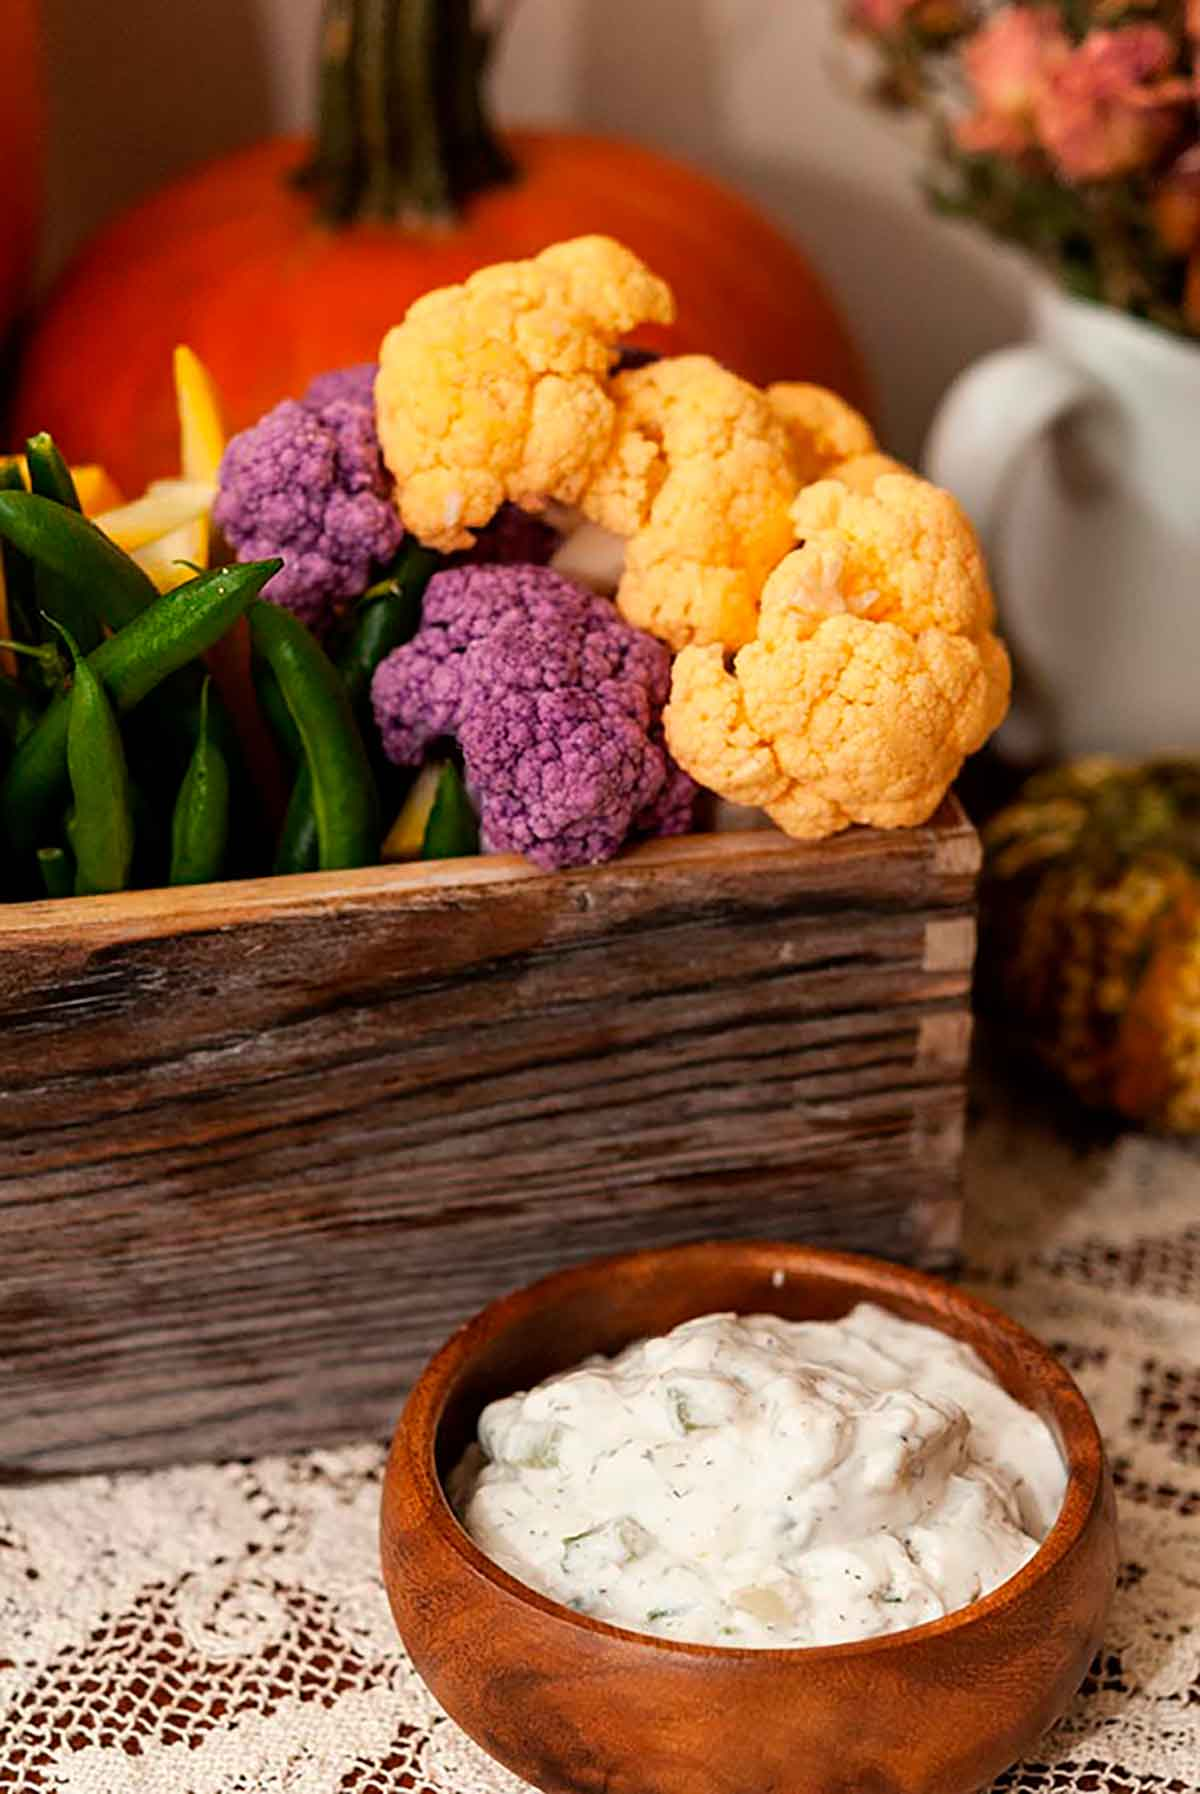 A small wooden bowl of vegetable dip in front of a flower box full of vegetables.